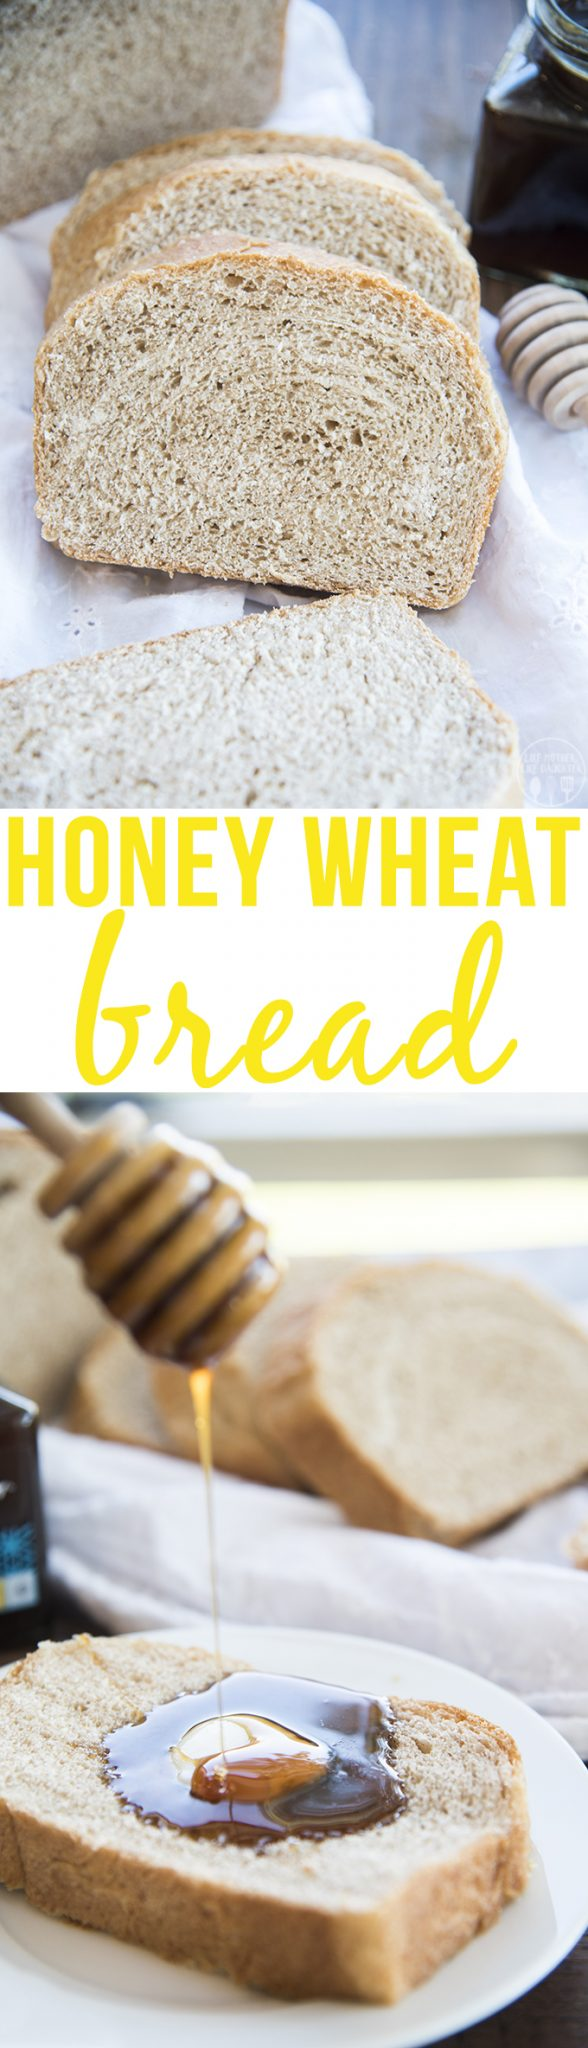 Honey Wheat Bread - This bread is perfectly thick, chewy, soft, and lightly sweetened. It tastes great on its own, or with extra butter and honey on top!